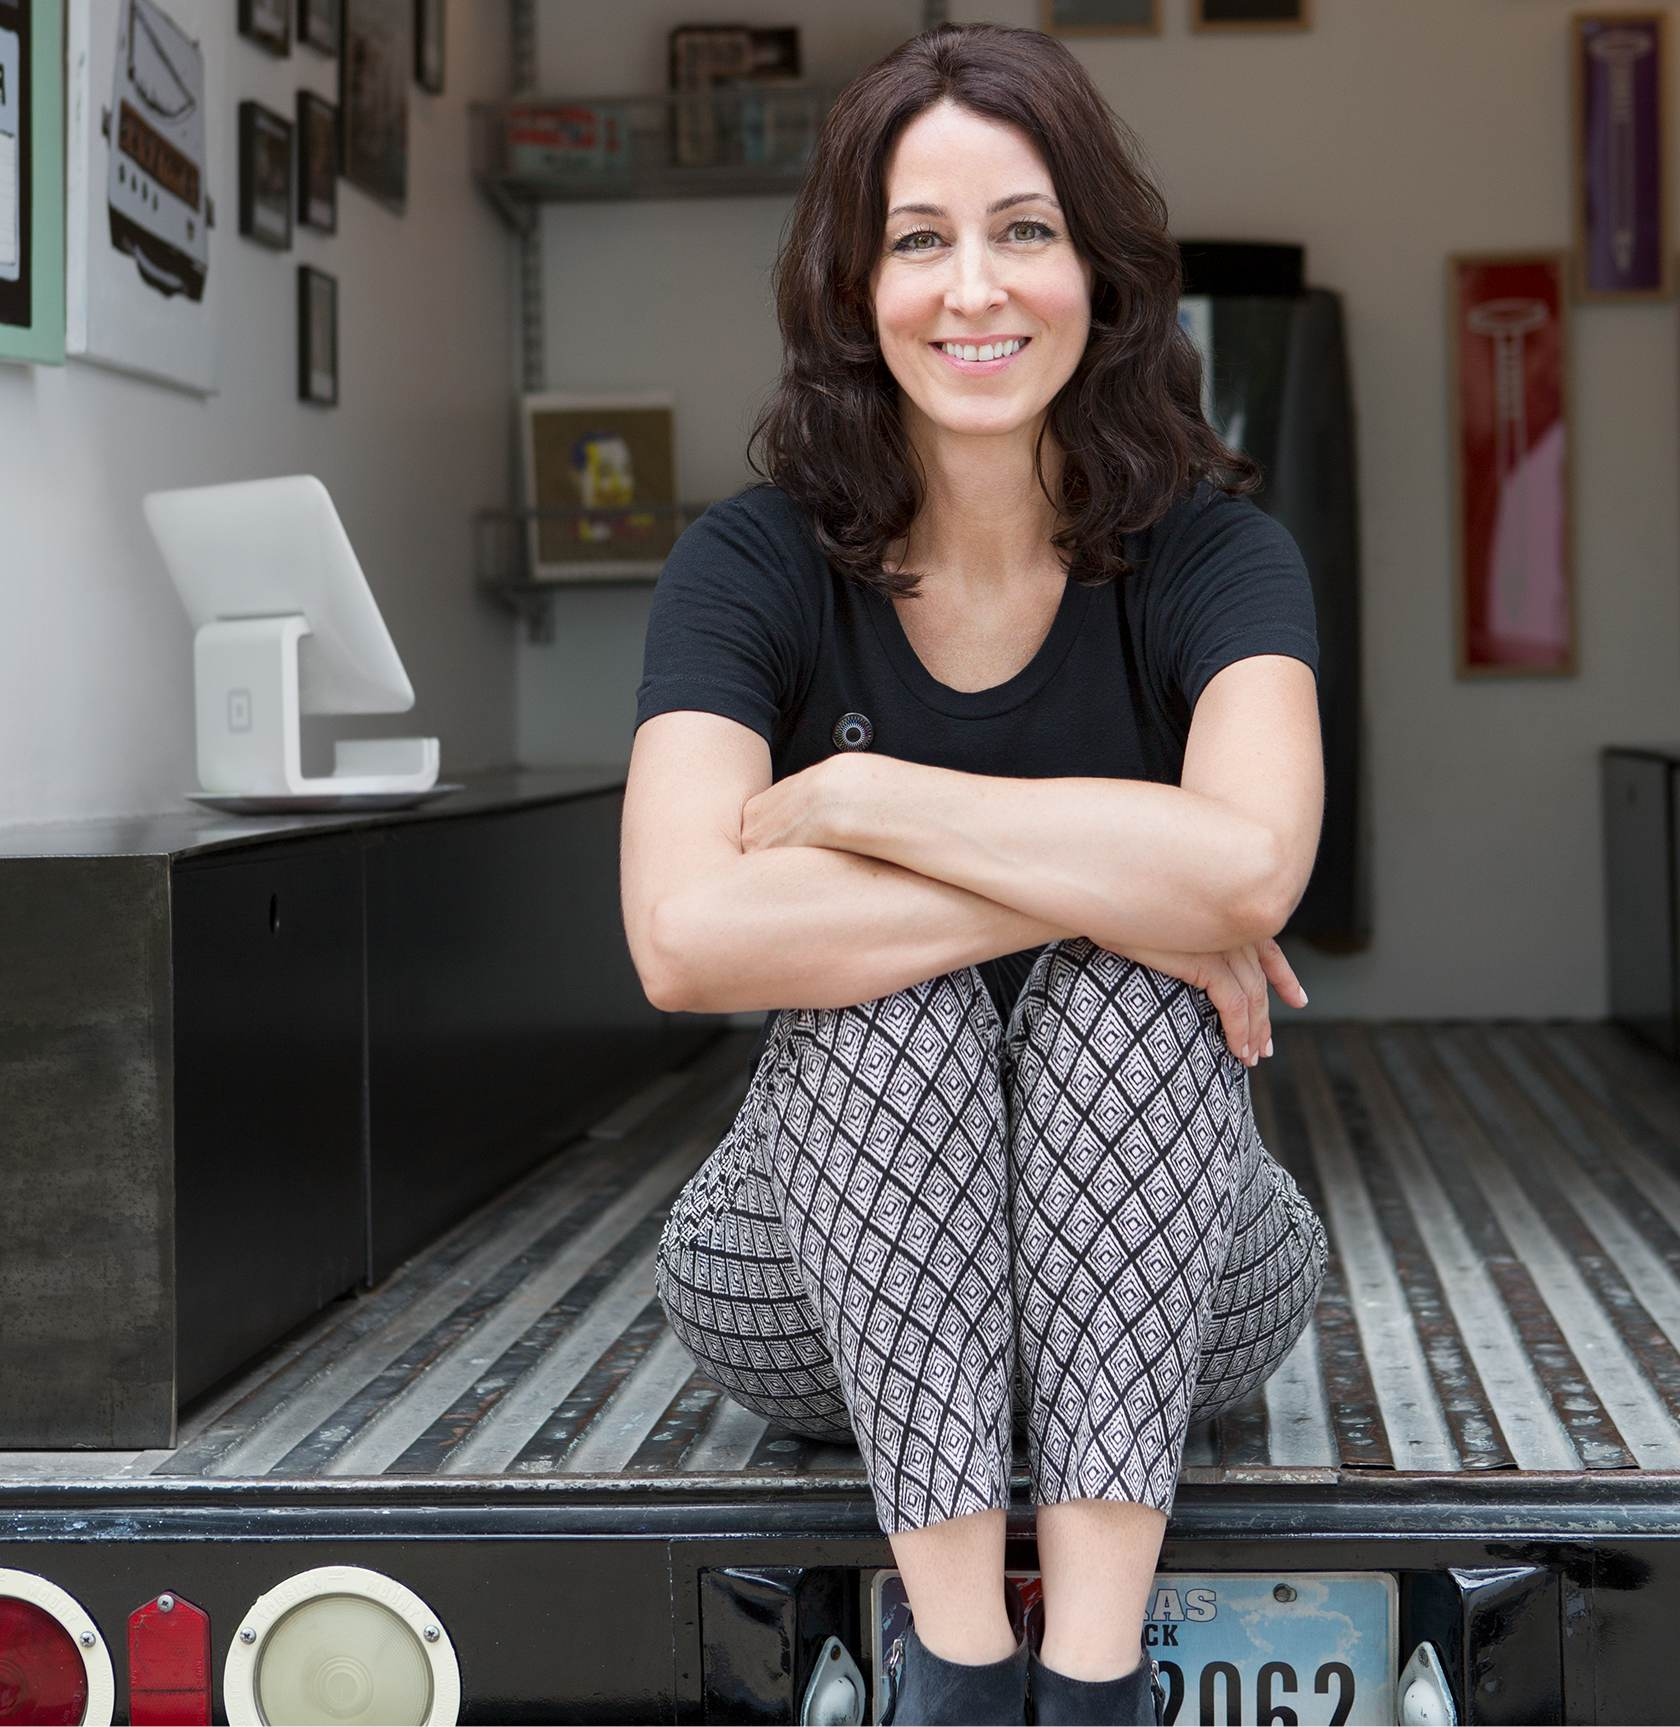 Photo of a woman sitting in the back of a mobile art gallery truck with a Square Stand in the background